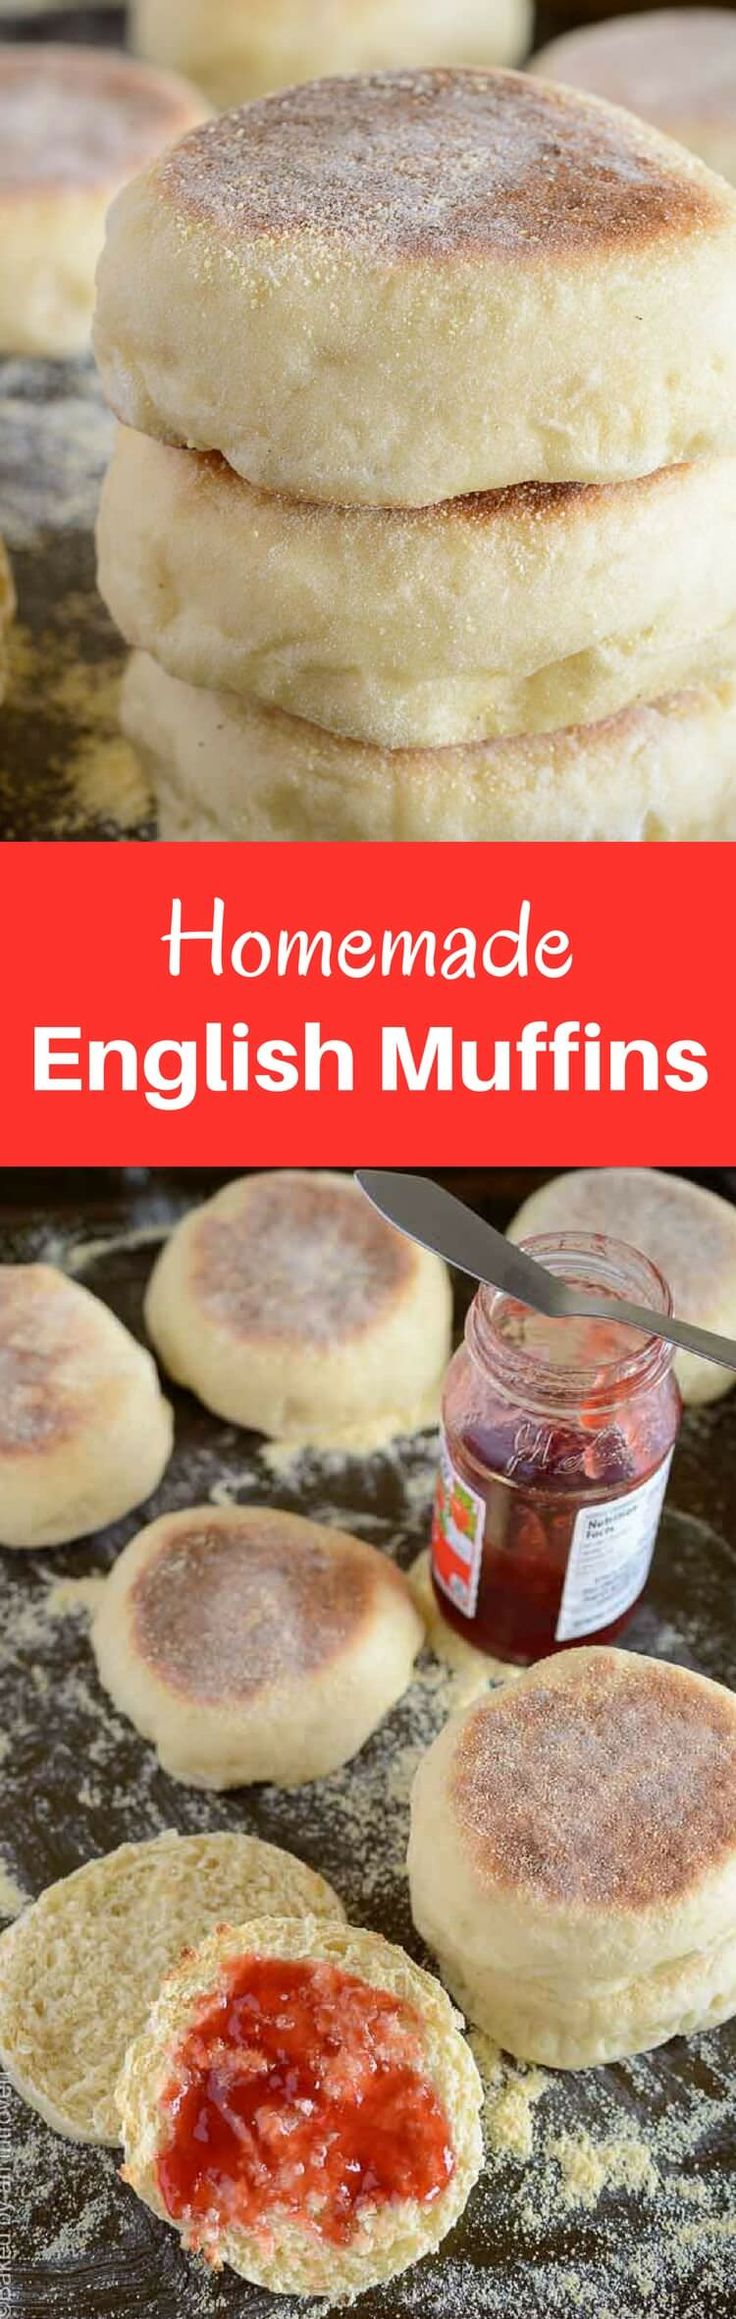 Homemade English muffins are so much easier than you think! This recipe is simple and will give you soft, chewy muffins in no time. via @introvertbaker